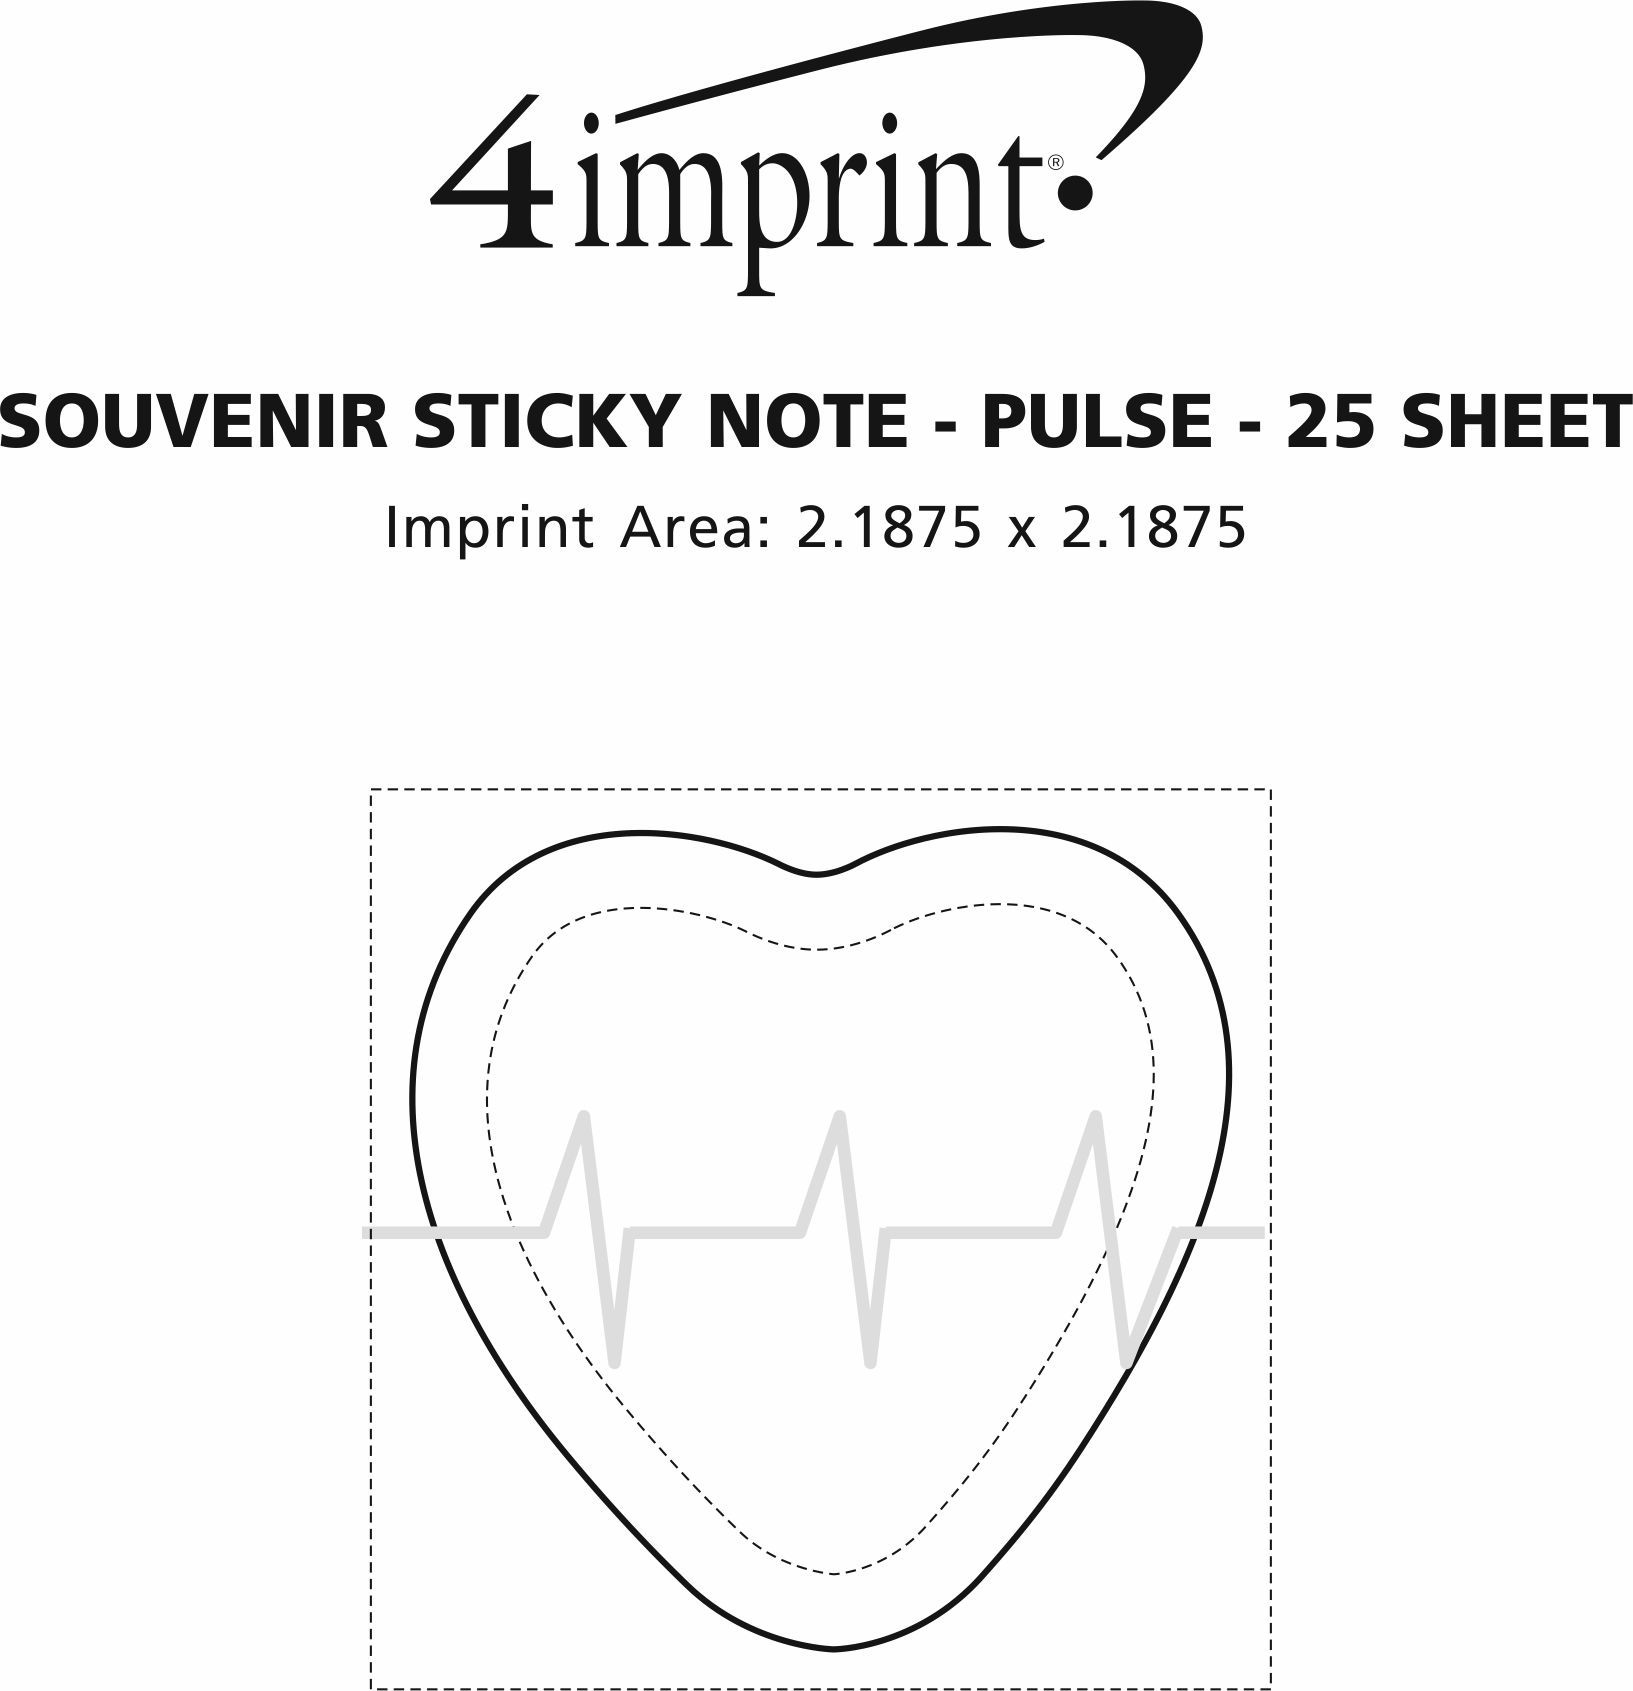 Imprint Area of Bic Sticky Note - Pulse - 25 Sheet - Stock Design